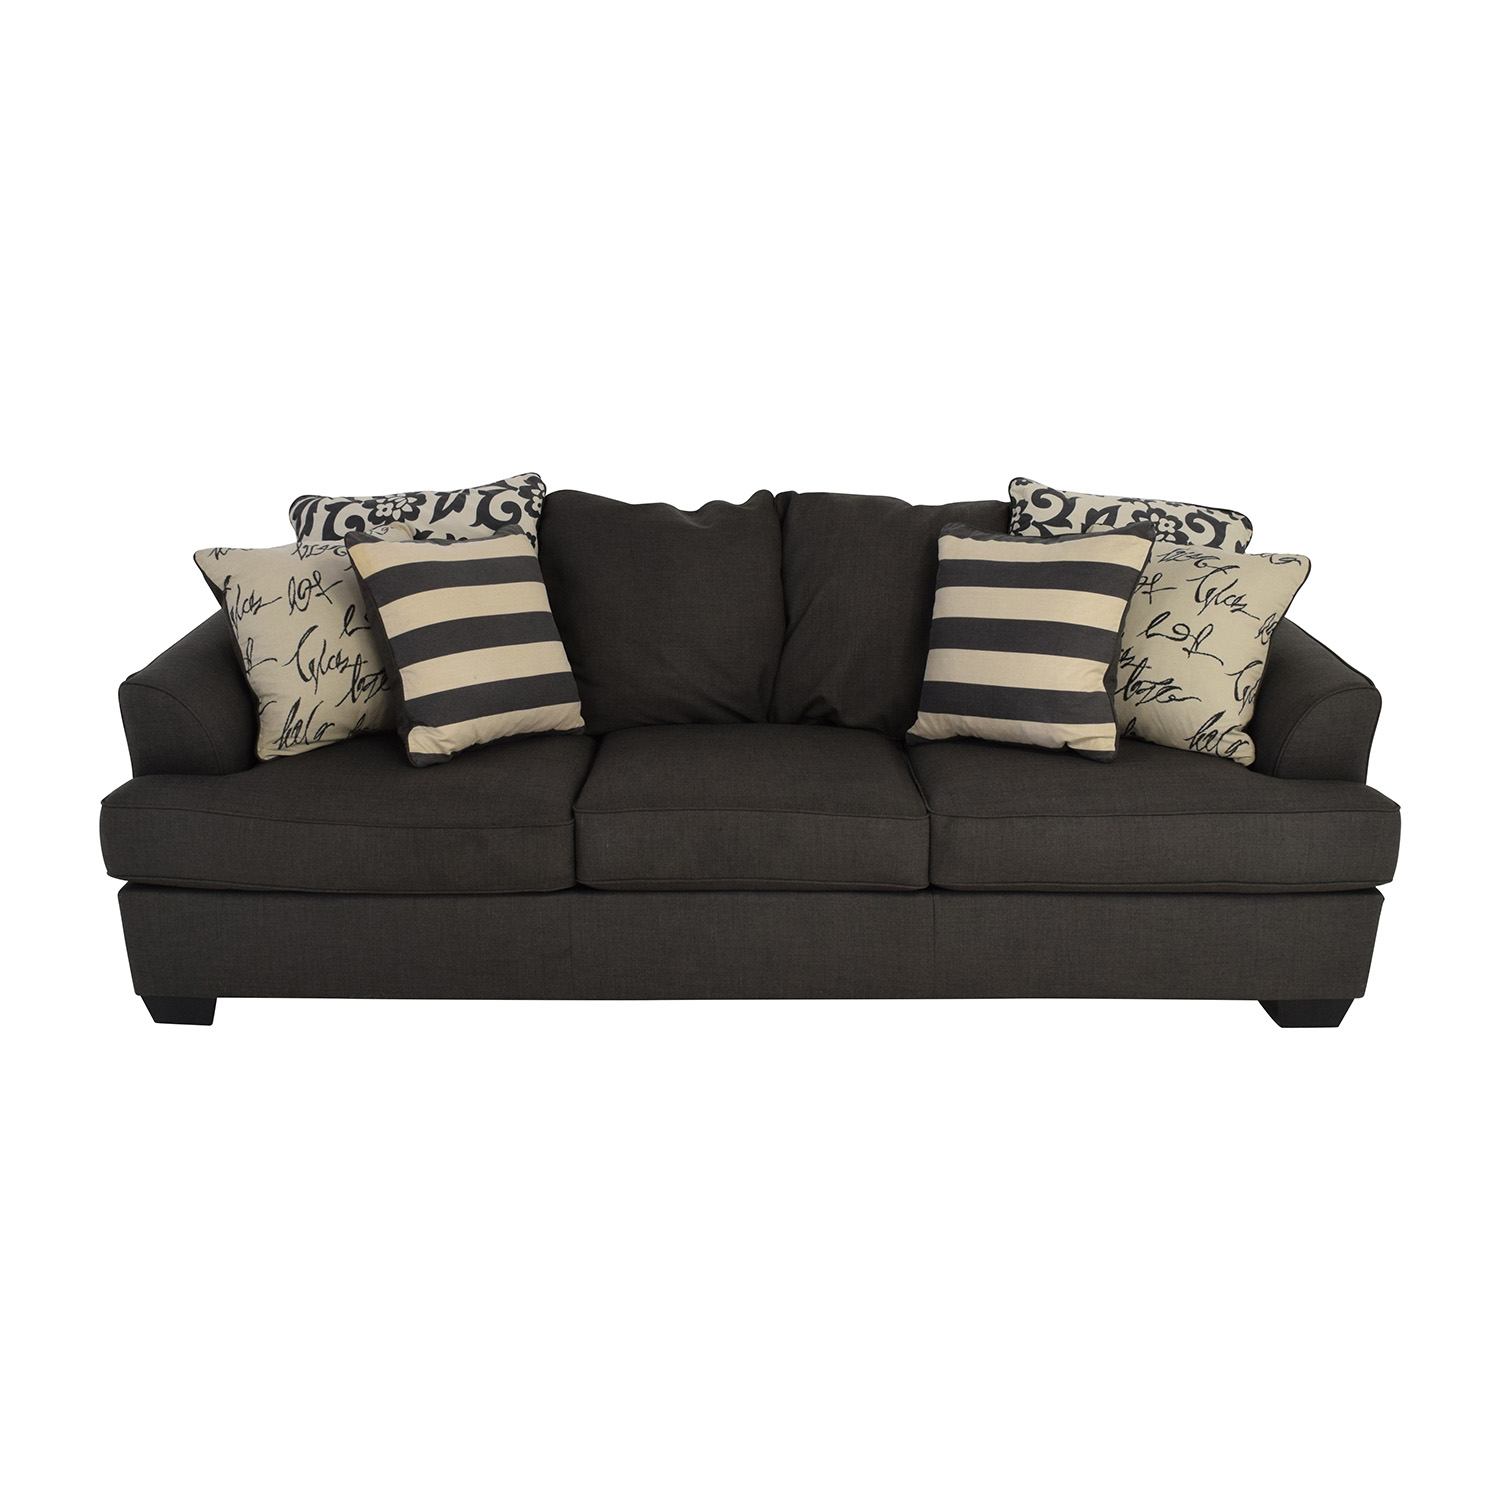 Ashley Sofas Prices: Ashley Sofas Prices Sofa Beds Design Glamorous Modern